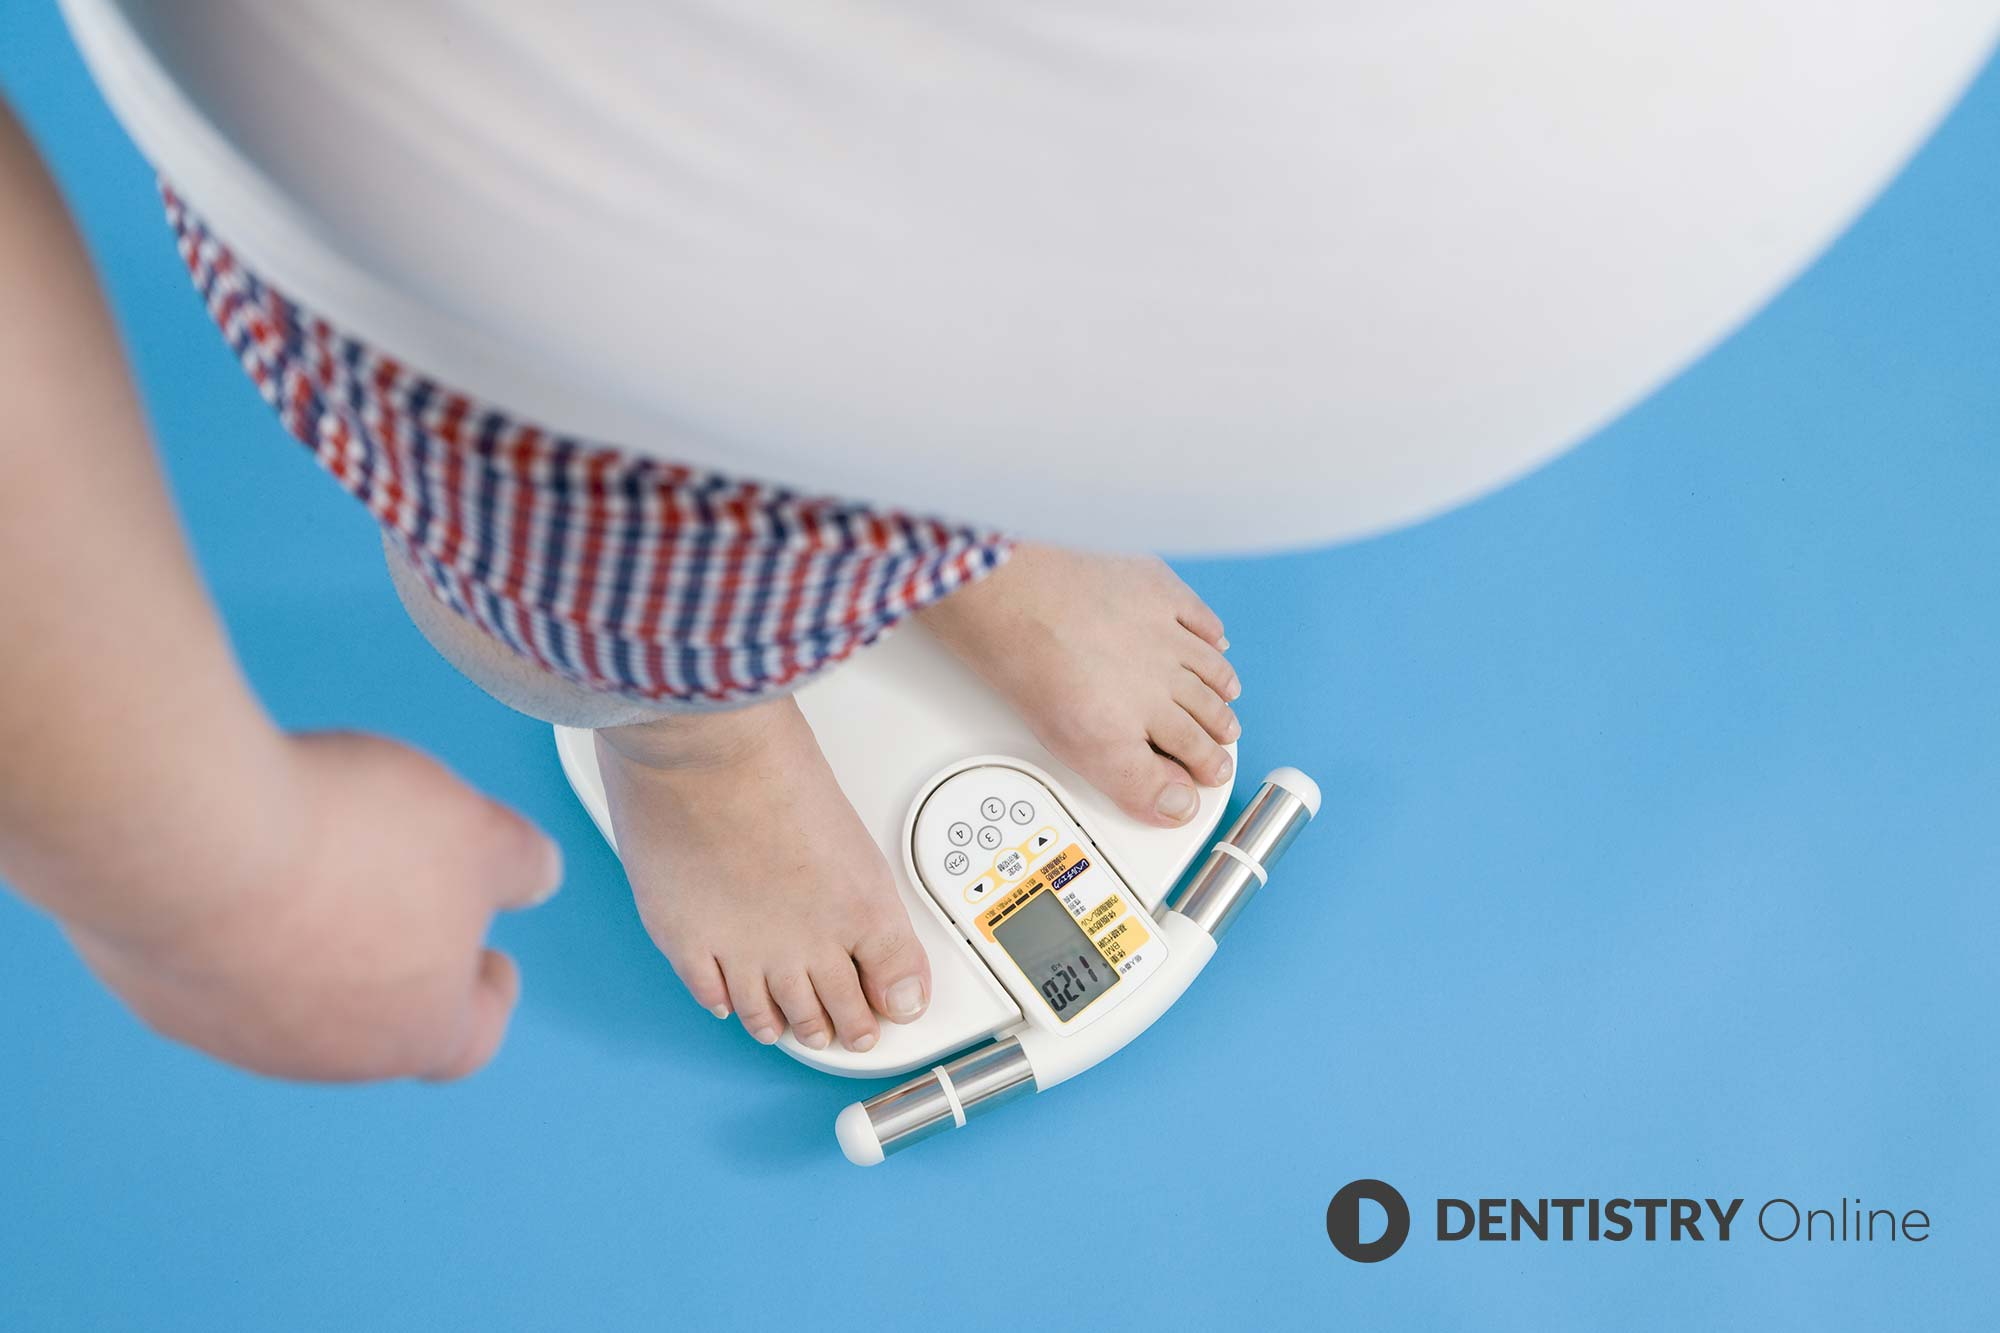 Gum disease may lead to the development of metabolic syndrome, new research suggests